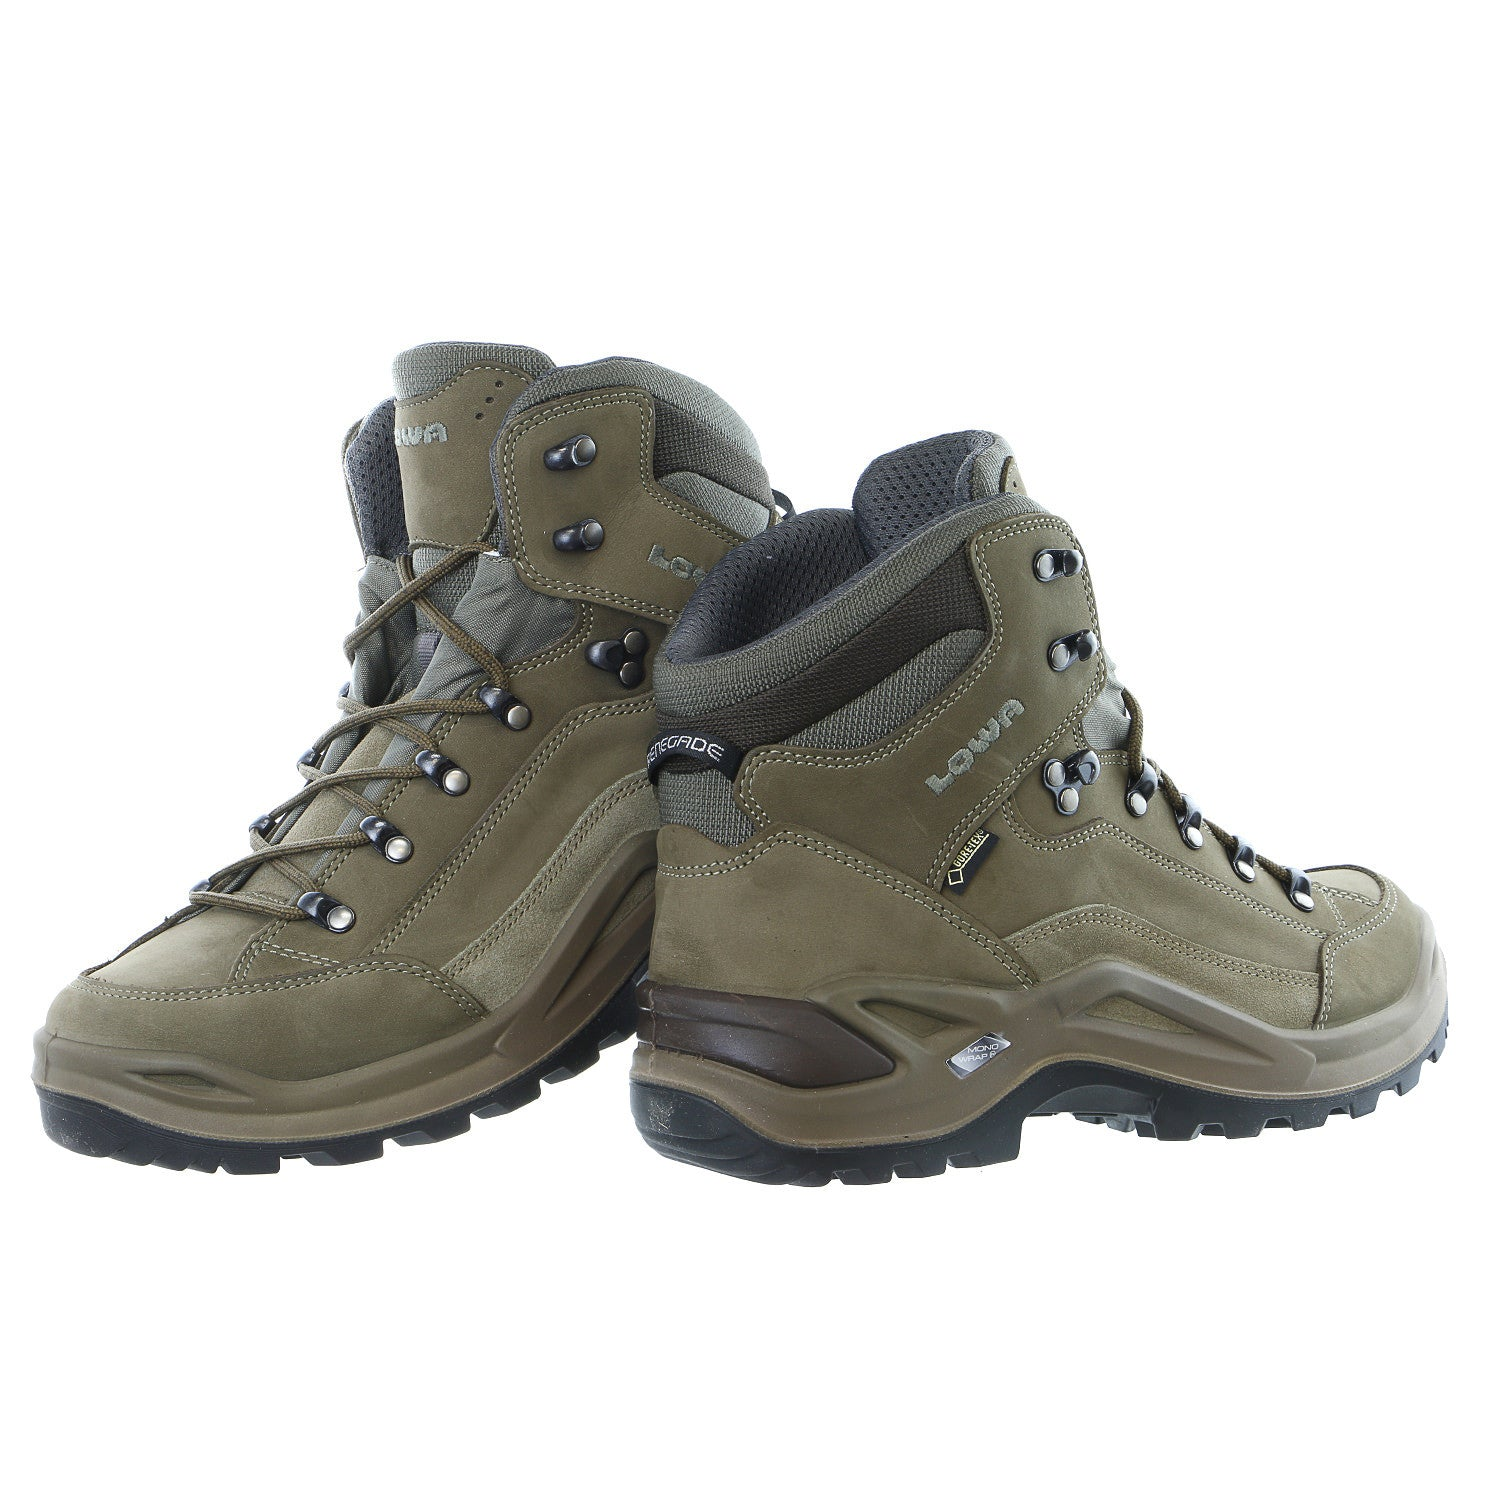 d0ec54328f3bf8 Lowa Renegade GTX Mid Hiking Boot - Men's - Shoplifestyle